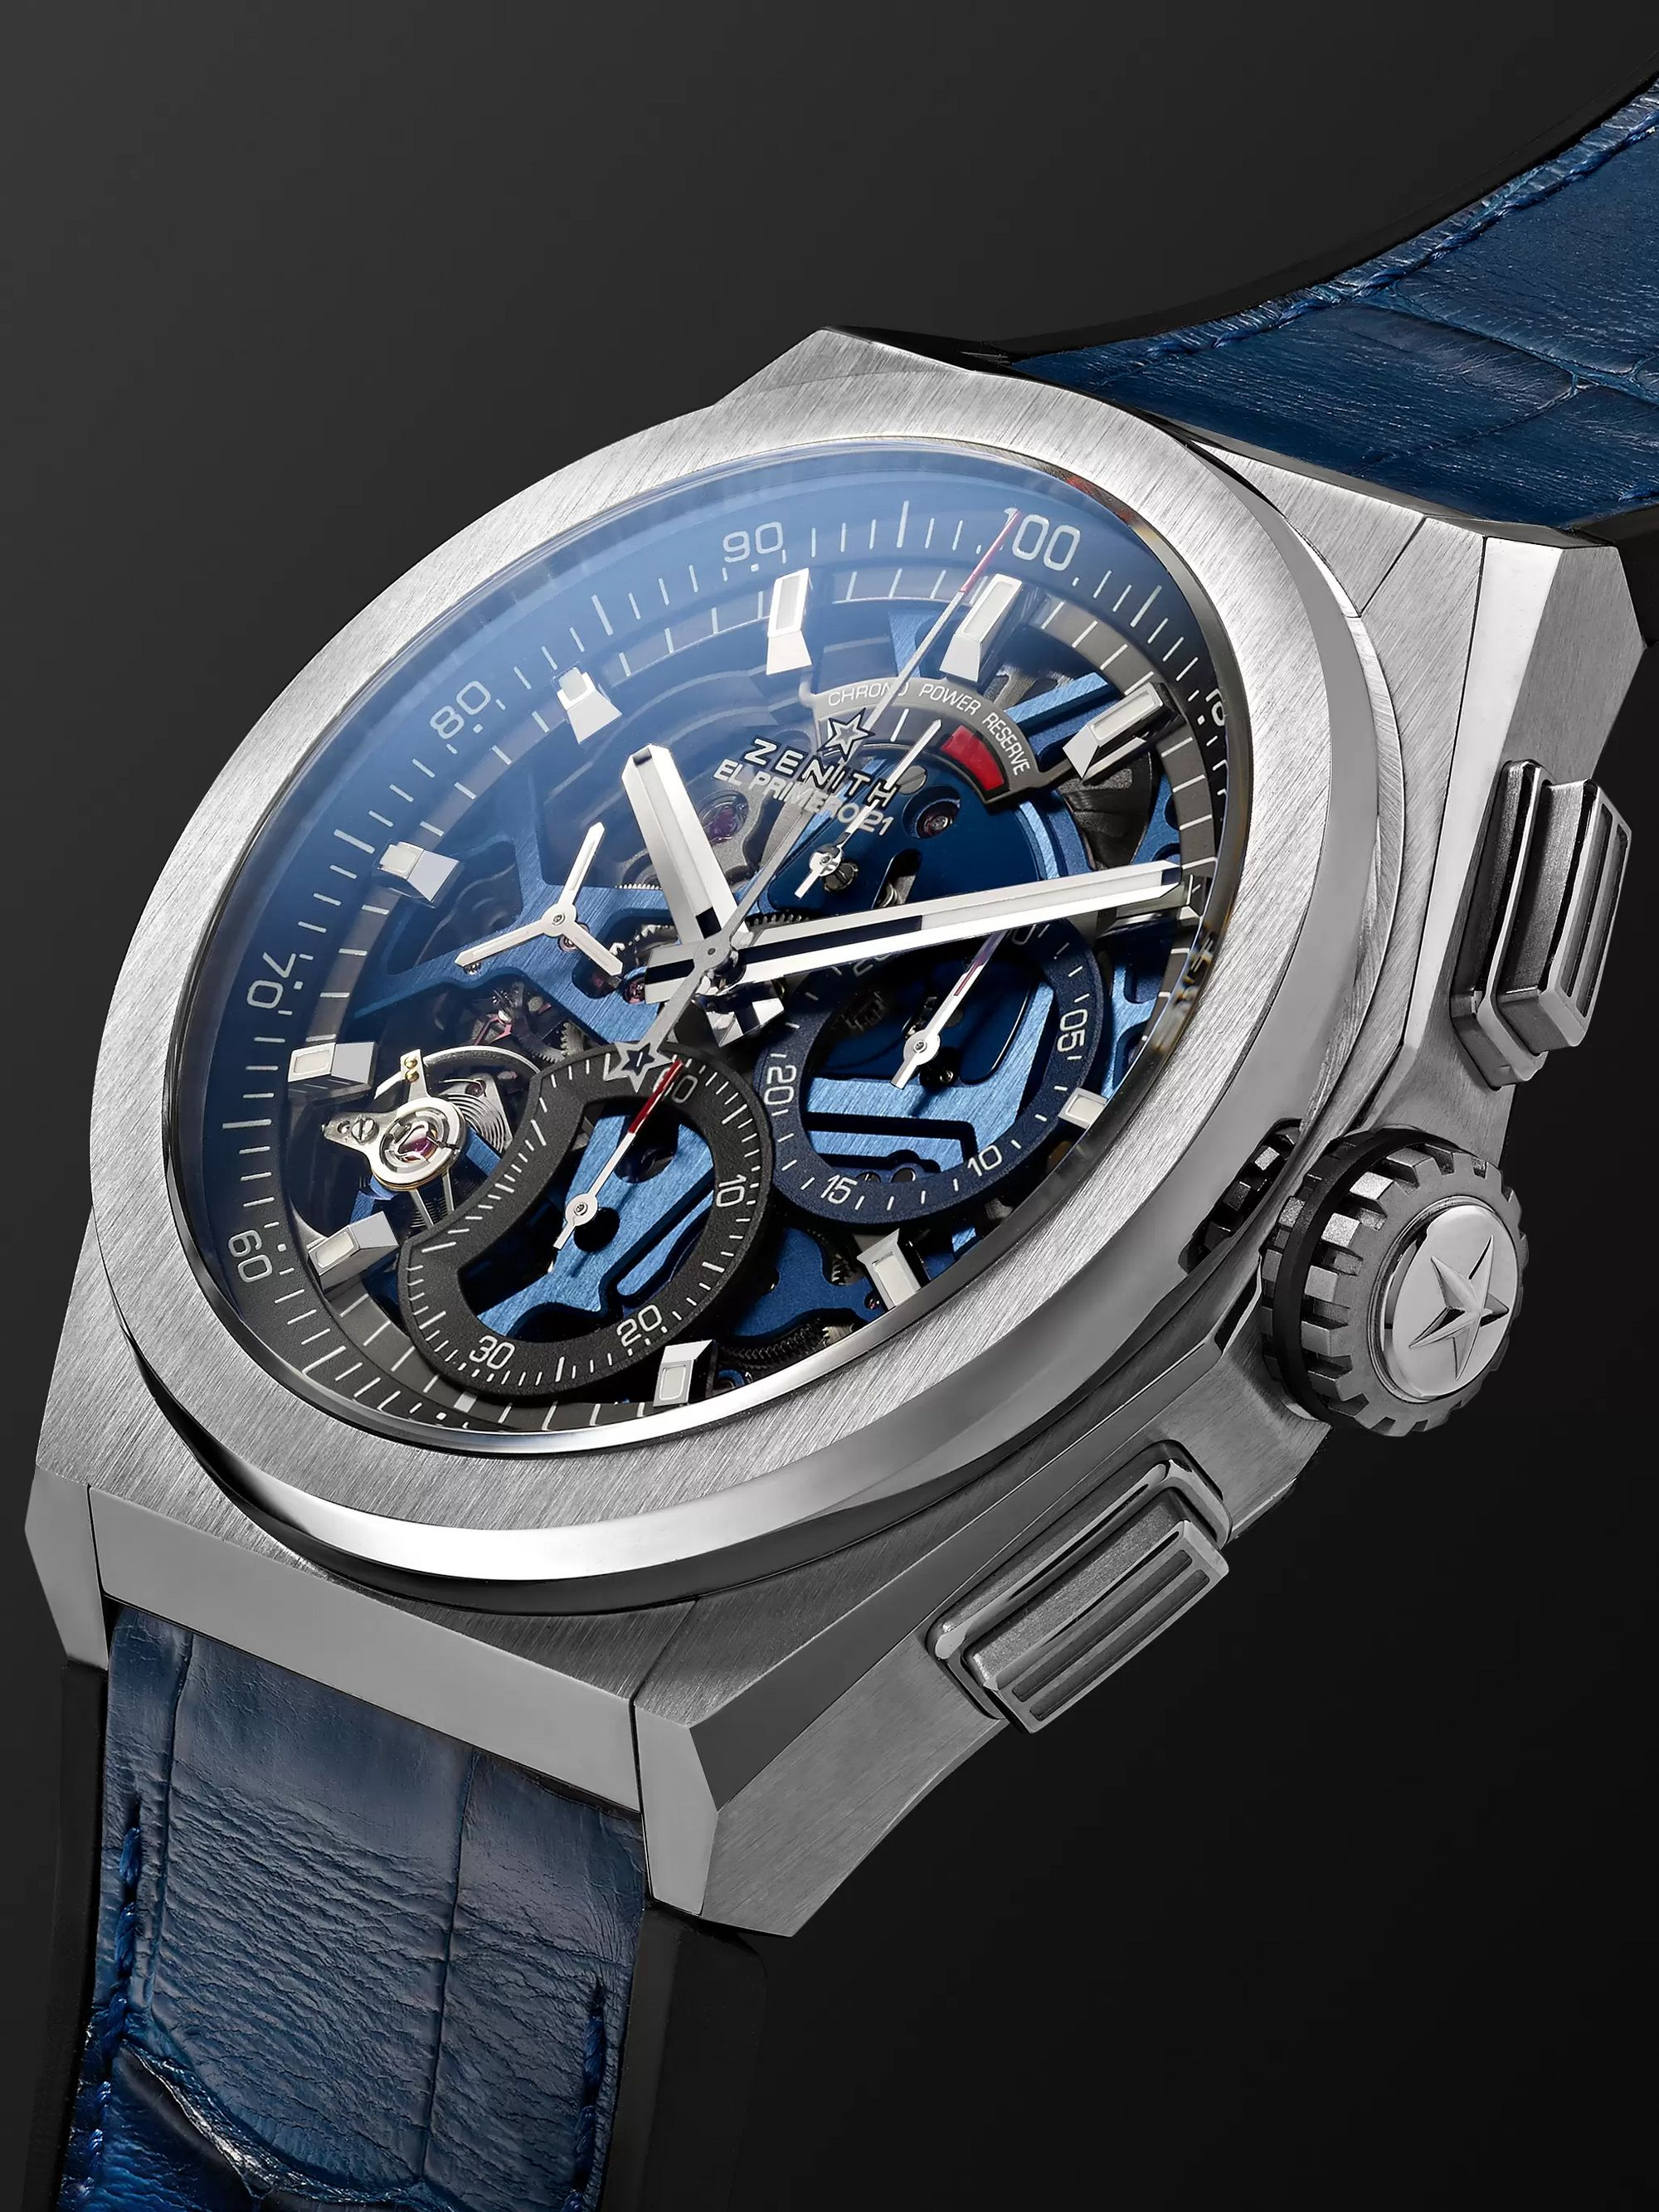 ZENITH DEFY El Primero 21 Chronograph 44mm Brushed-Titanium, Alligator and Rubber Watch, Ref. No. 95.9002.9004/78.R584